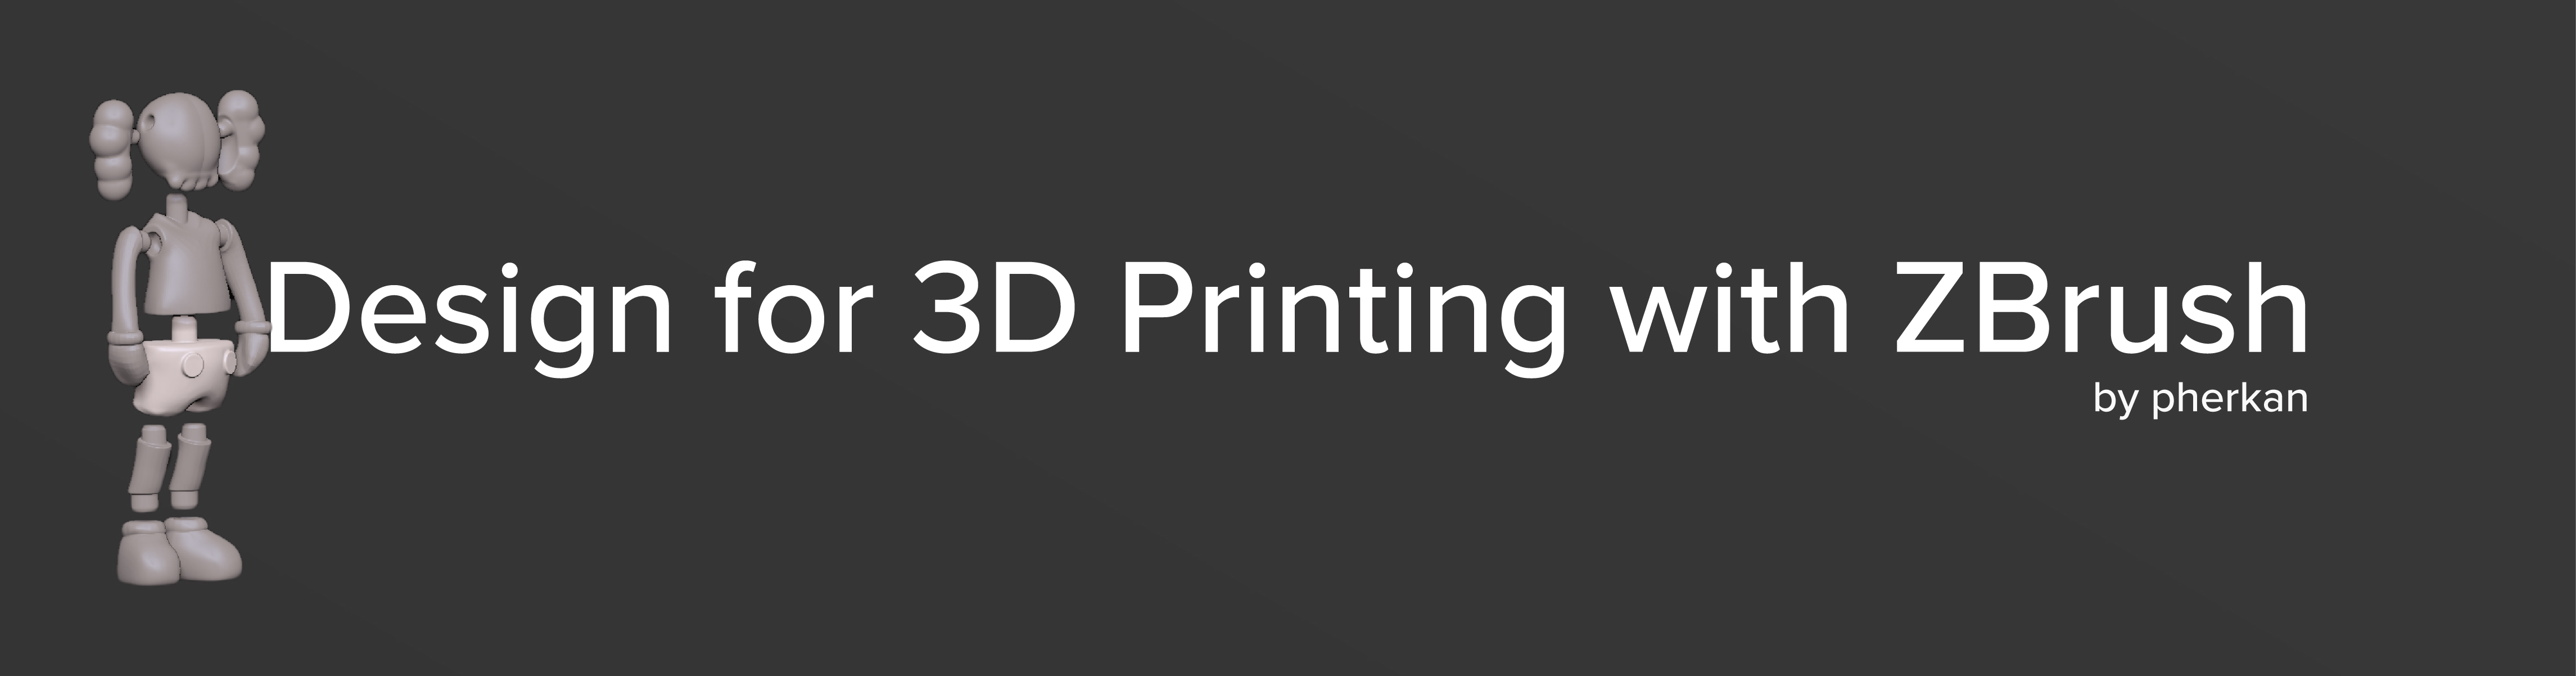 Design for 3D Printing with ZBrush - CAD / Show and tell